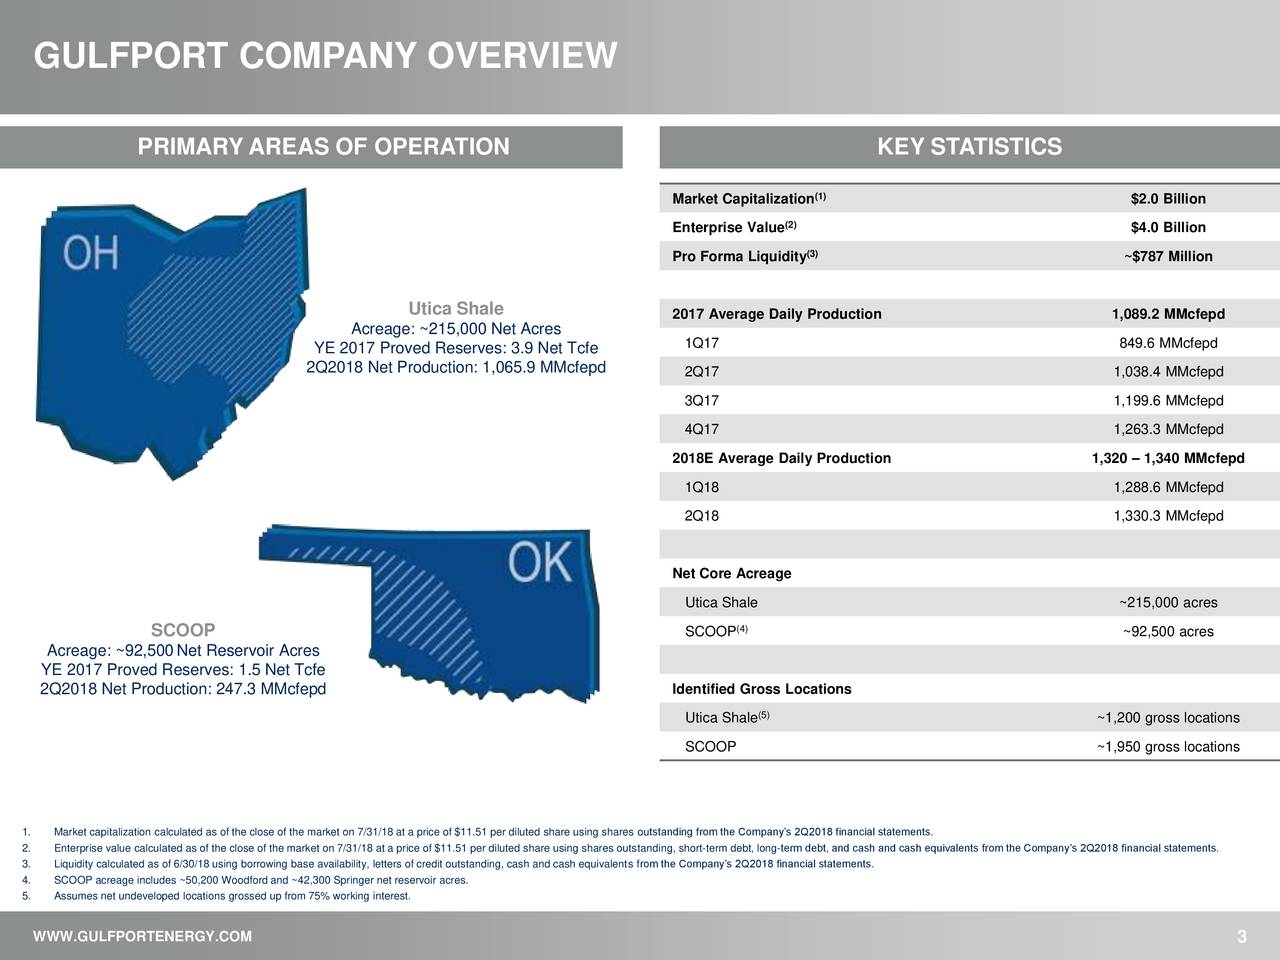 PRIMARY AREAS OF OPERATION KEY STATISTICS Market Capitalization1) $2.0 Billion Enterprise Value(2) $4.0 Billion (3) Pro Forma Liquidity ~$787 Million Utica Shale 2017 Average Daily Production 1,089.2 MMcfepd Acreage: ~215,000 Net Acres YE 2017 Proved Reserves: 3.9 Net Tcfe 1Q17 849.6 MMcfepd 2Q2018 Net Production: 1,065.9 MMcfepd 2Q17 1,038.4 MMcfepd 3Q17 1,199.6 MMcfepd 4Q17 1,263.3 MMcfepd 2018E Average Daily Production 1,320 – 1,340 MMcfepd 1Q18 1,288.6 MMcfepd 2Q18 1,330.3 MMcfepd Net Core Acreage Utica Shale ~215,000 acres (4) SCOOP SCOOP ~92,500 acres Acreage: ~92,500Net Reservoir Acres YE 2017 Proved Reserves: 1.5 Net Tcfe 2Q2018 Net Production: 247.3 MMcfepd Identified Gross Locations Utica Shale(5) ~1,200 gross locations SCOOP ~1,950 gross locations 1. Market capitalization calculated as of the close of the market on 7/31/18 at a price of $11.51 per diluted share using shares outstanding from the Company's 2Q2018 financial statements. 2. Enterprise value calculated as of the close of the market on 7/31/18 at a price of $11.51 per diluted share using shares outstanding, short-term debt, long-term debt, and cash and cash equivalents from the Company's 2Q2018 financial statements. 3. Liquidity calculated as of 6/30/18 using borrowing base availability, letters of credit outstanding, cash and cash equivalents from the Company's 2Q2018 financial statements. 4. SCOOP acreage includes ~50,200 Woodford and ~42,300 Springer net reservoir acres. 5. Assumes net undeveloped locations grossed up from 75% working interest. WWW.GULFPORTENERGY.COM 3